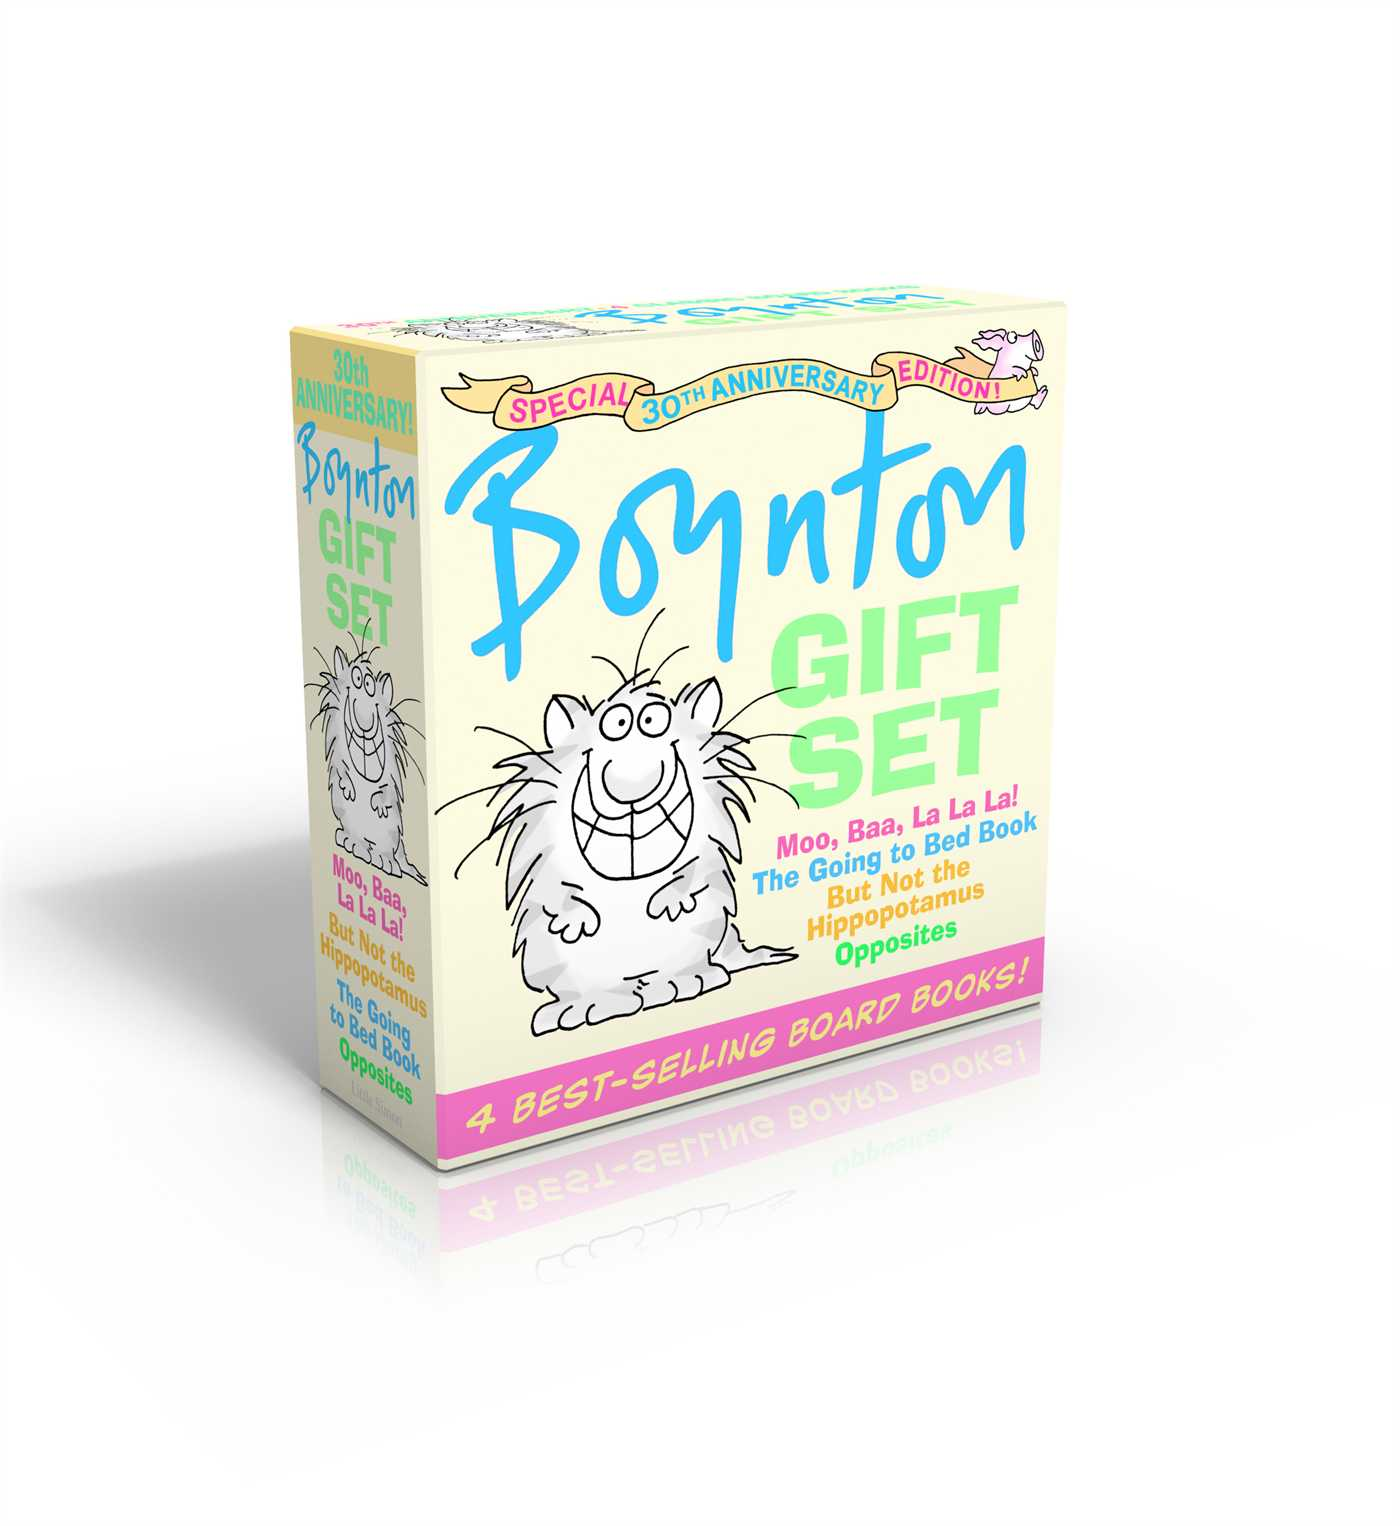 Boynton-gift-set-9781442481916_hr